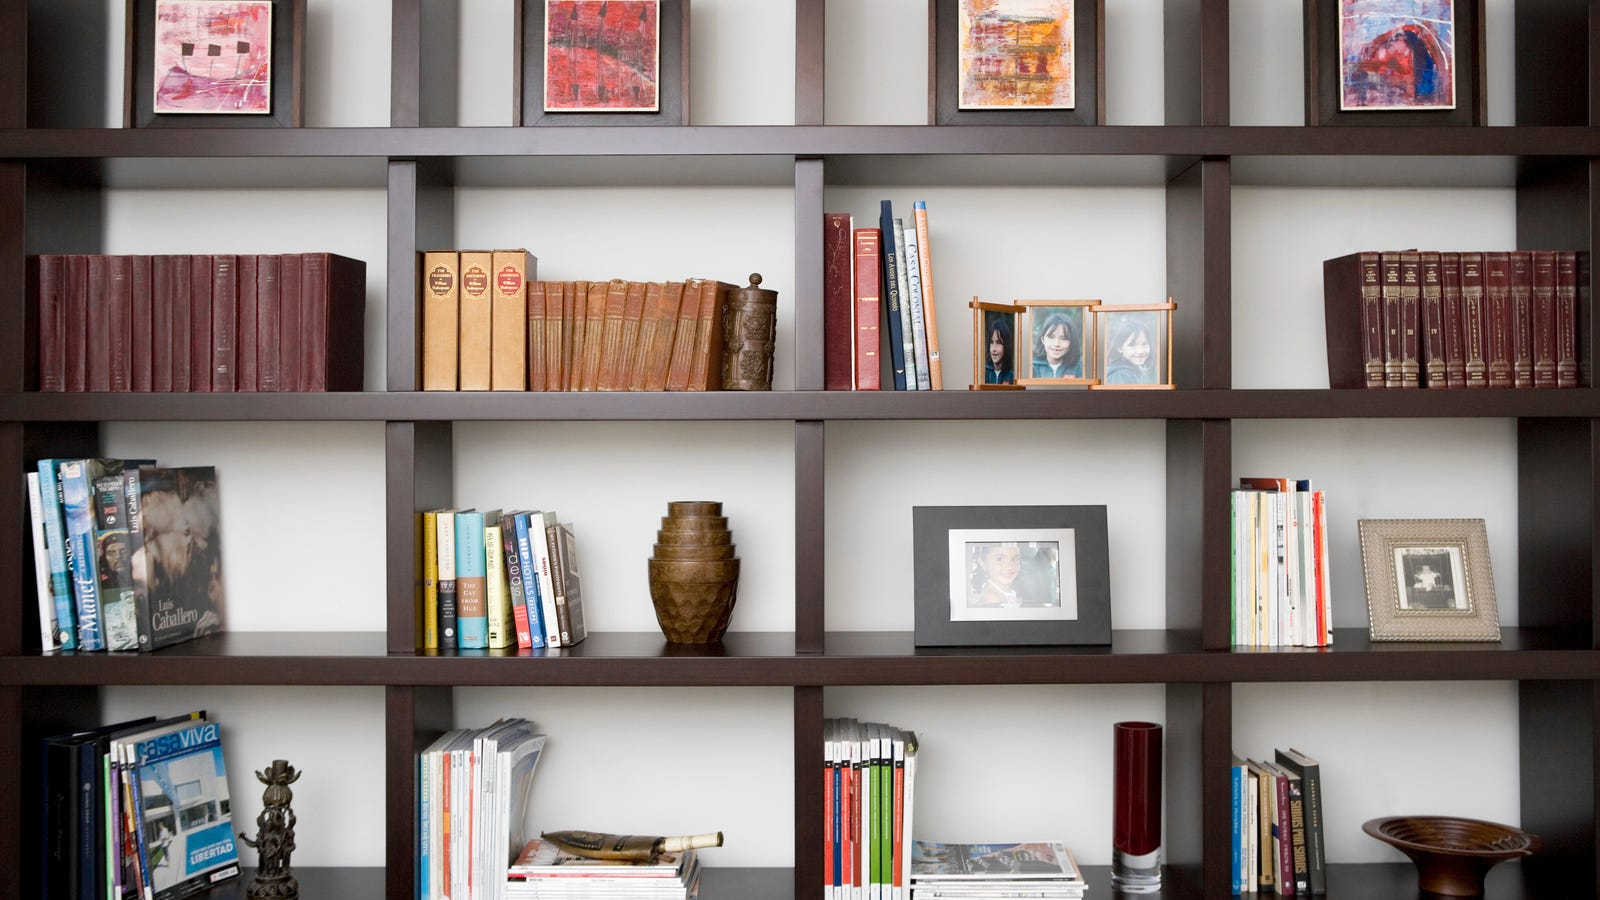 Enjoyable How To Decorate A Bookshelf With More Than Just Books Interior Design Ideas Tzicisoteloinfo